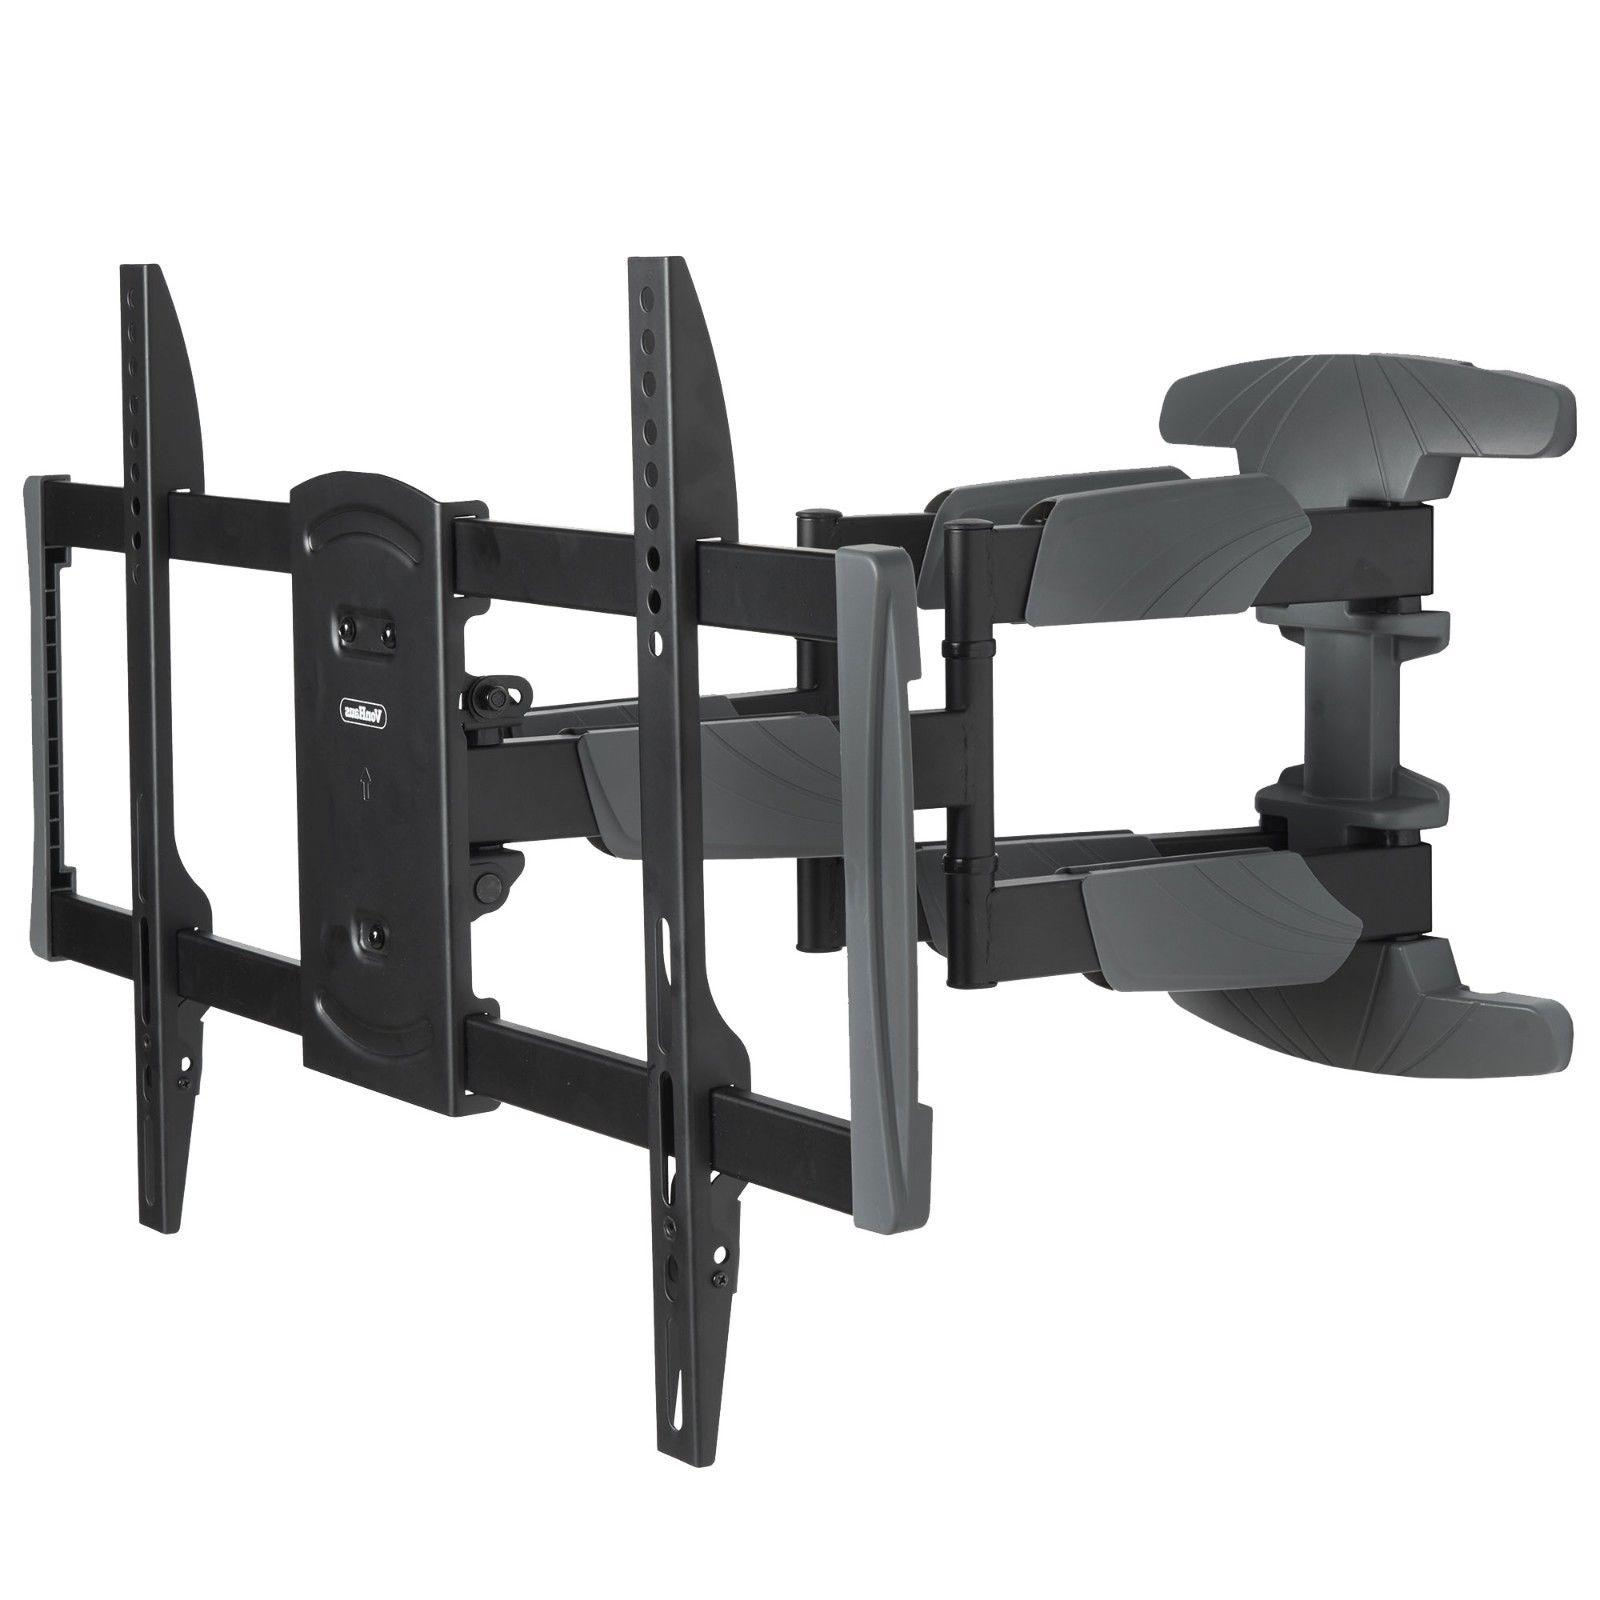 VonHaus TV Wall Mount Bracket Double Arm Articulating for 37